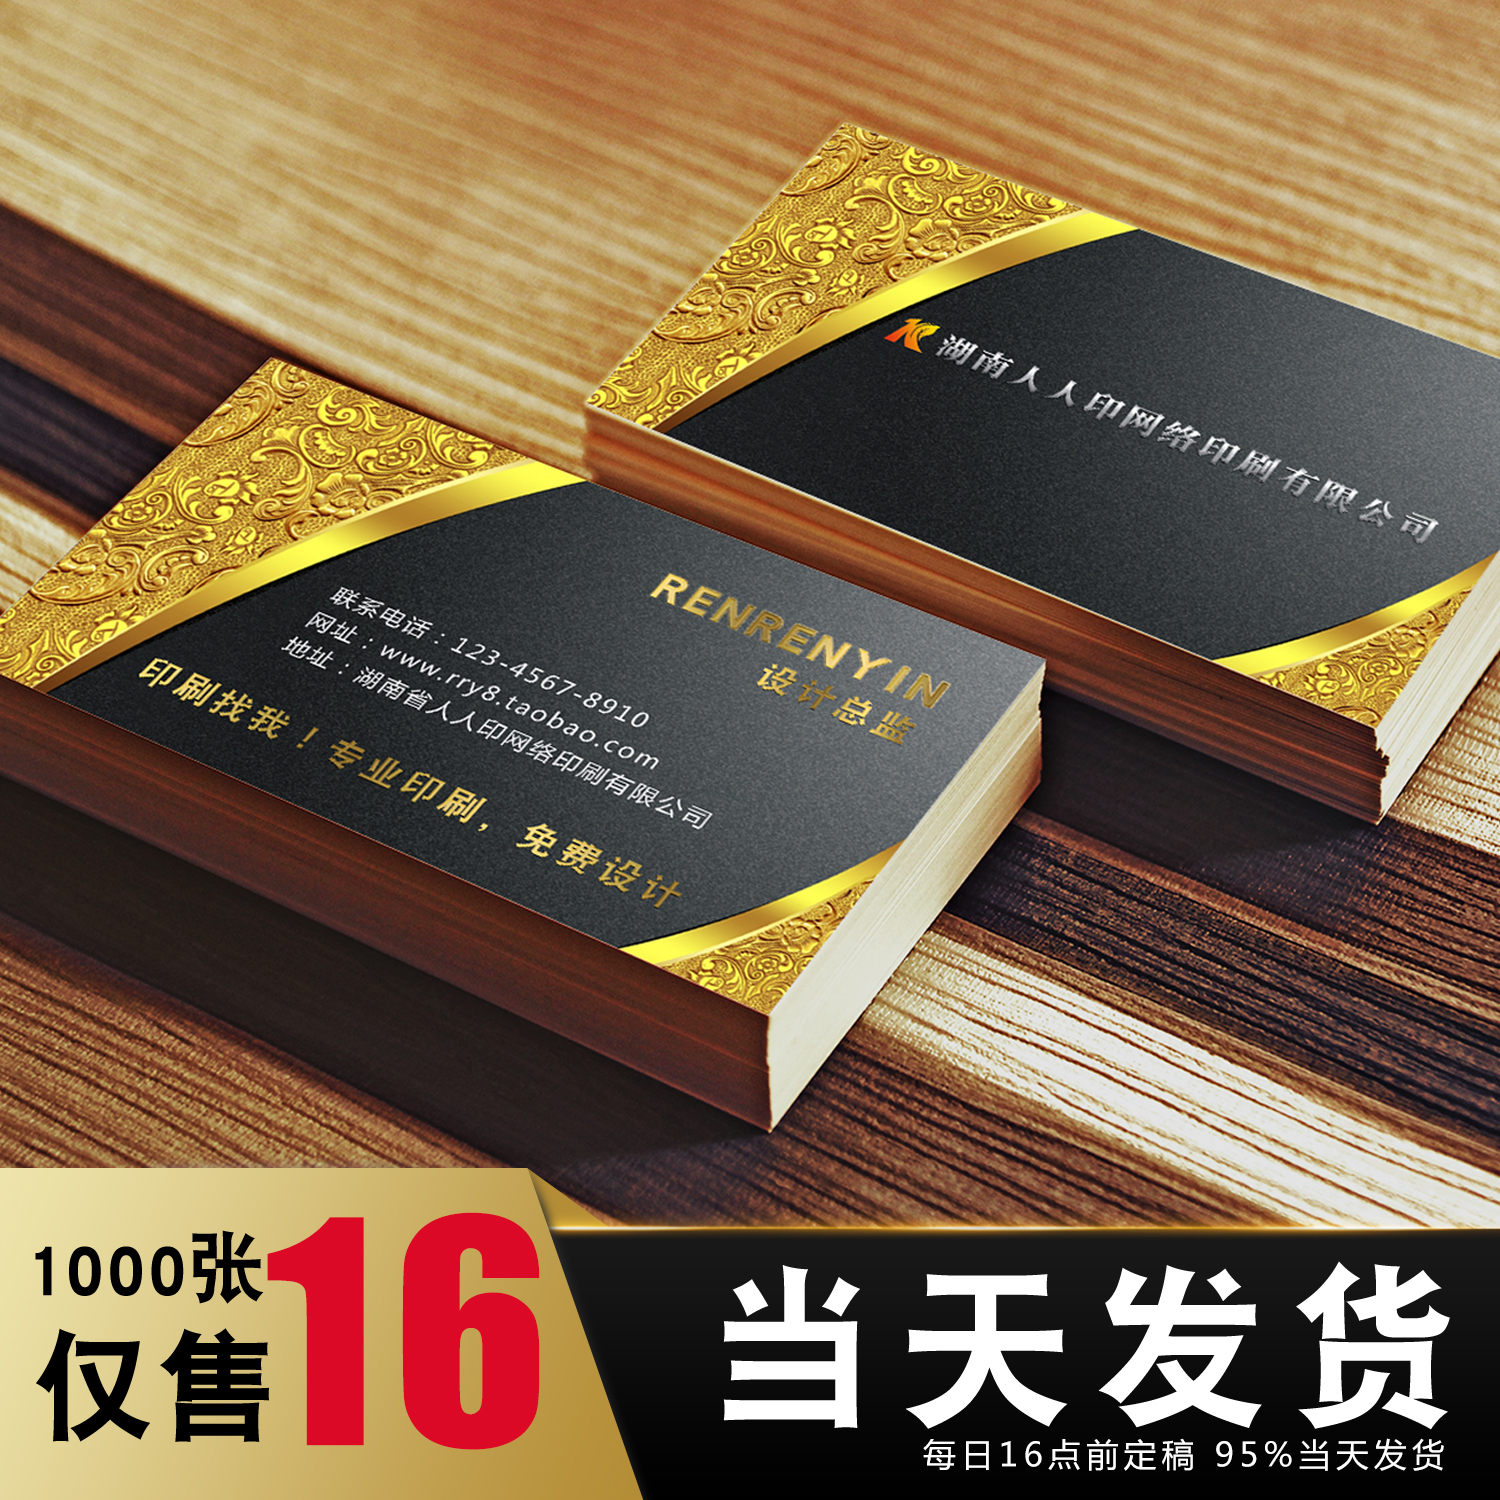 Usd 652 business card making free design to do business card business card making free design to do business card double sided printing company to print reheart Images